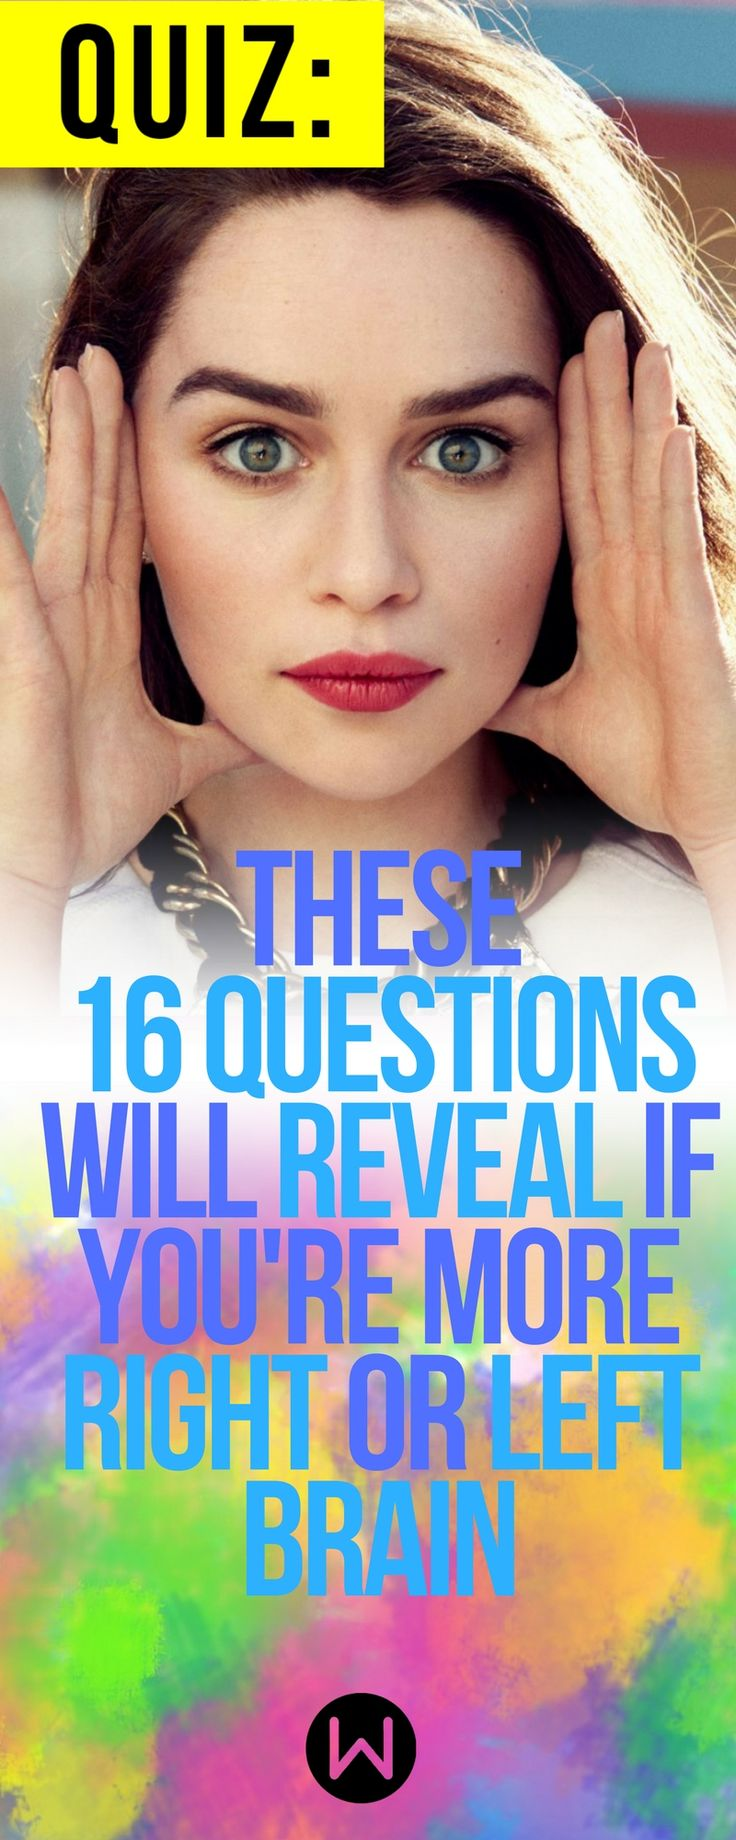 Quiz: Are you more right or left brain? Take this quiz to find out! About Yourself Quiz, Fun Quiz, Personality Test, Random Questions, Personality Quiz, Girl Quiz,Buzzfeed Quizzes, Playbuzz Quiz, Psychology, Personality Quizzes for Teens, Fun Tests, Personality Types